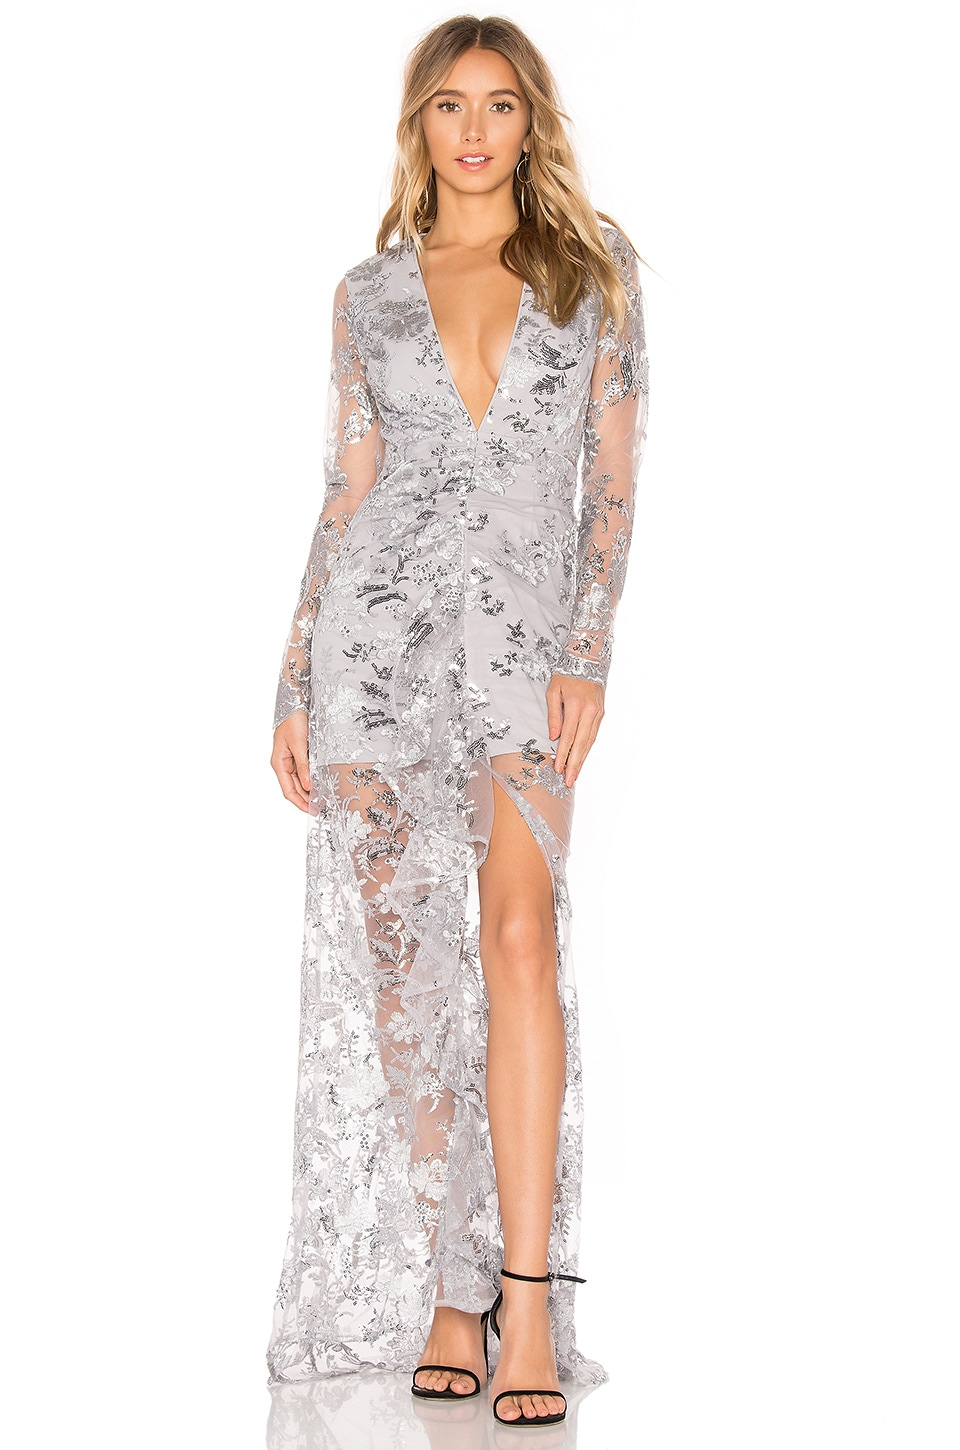 X by NBD Ice Melts Gown in Silver